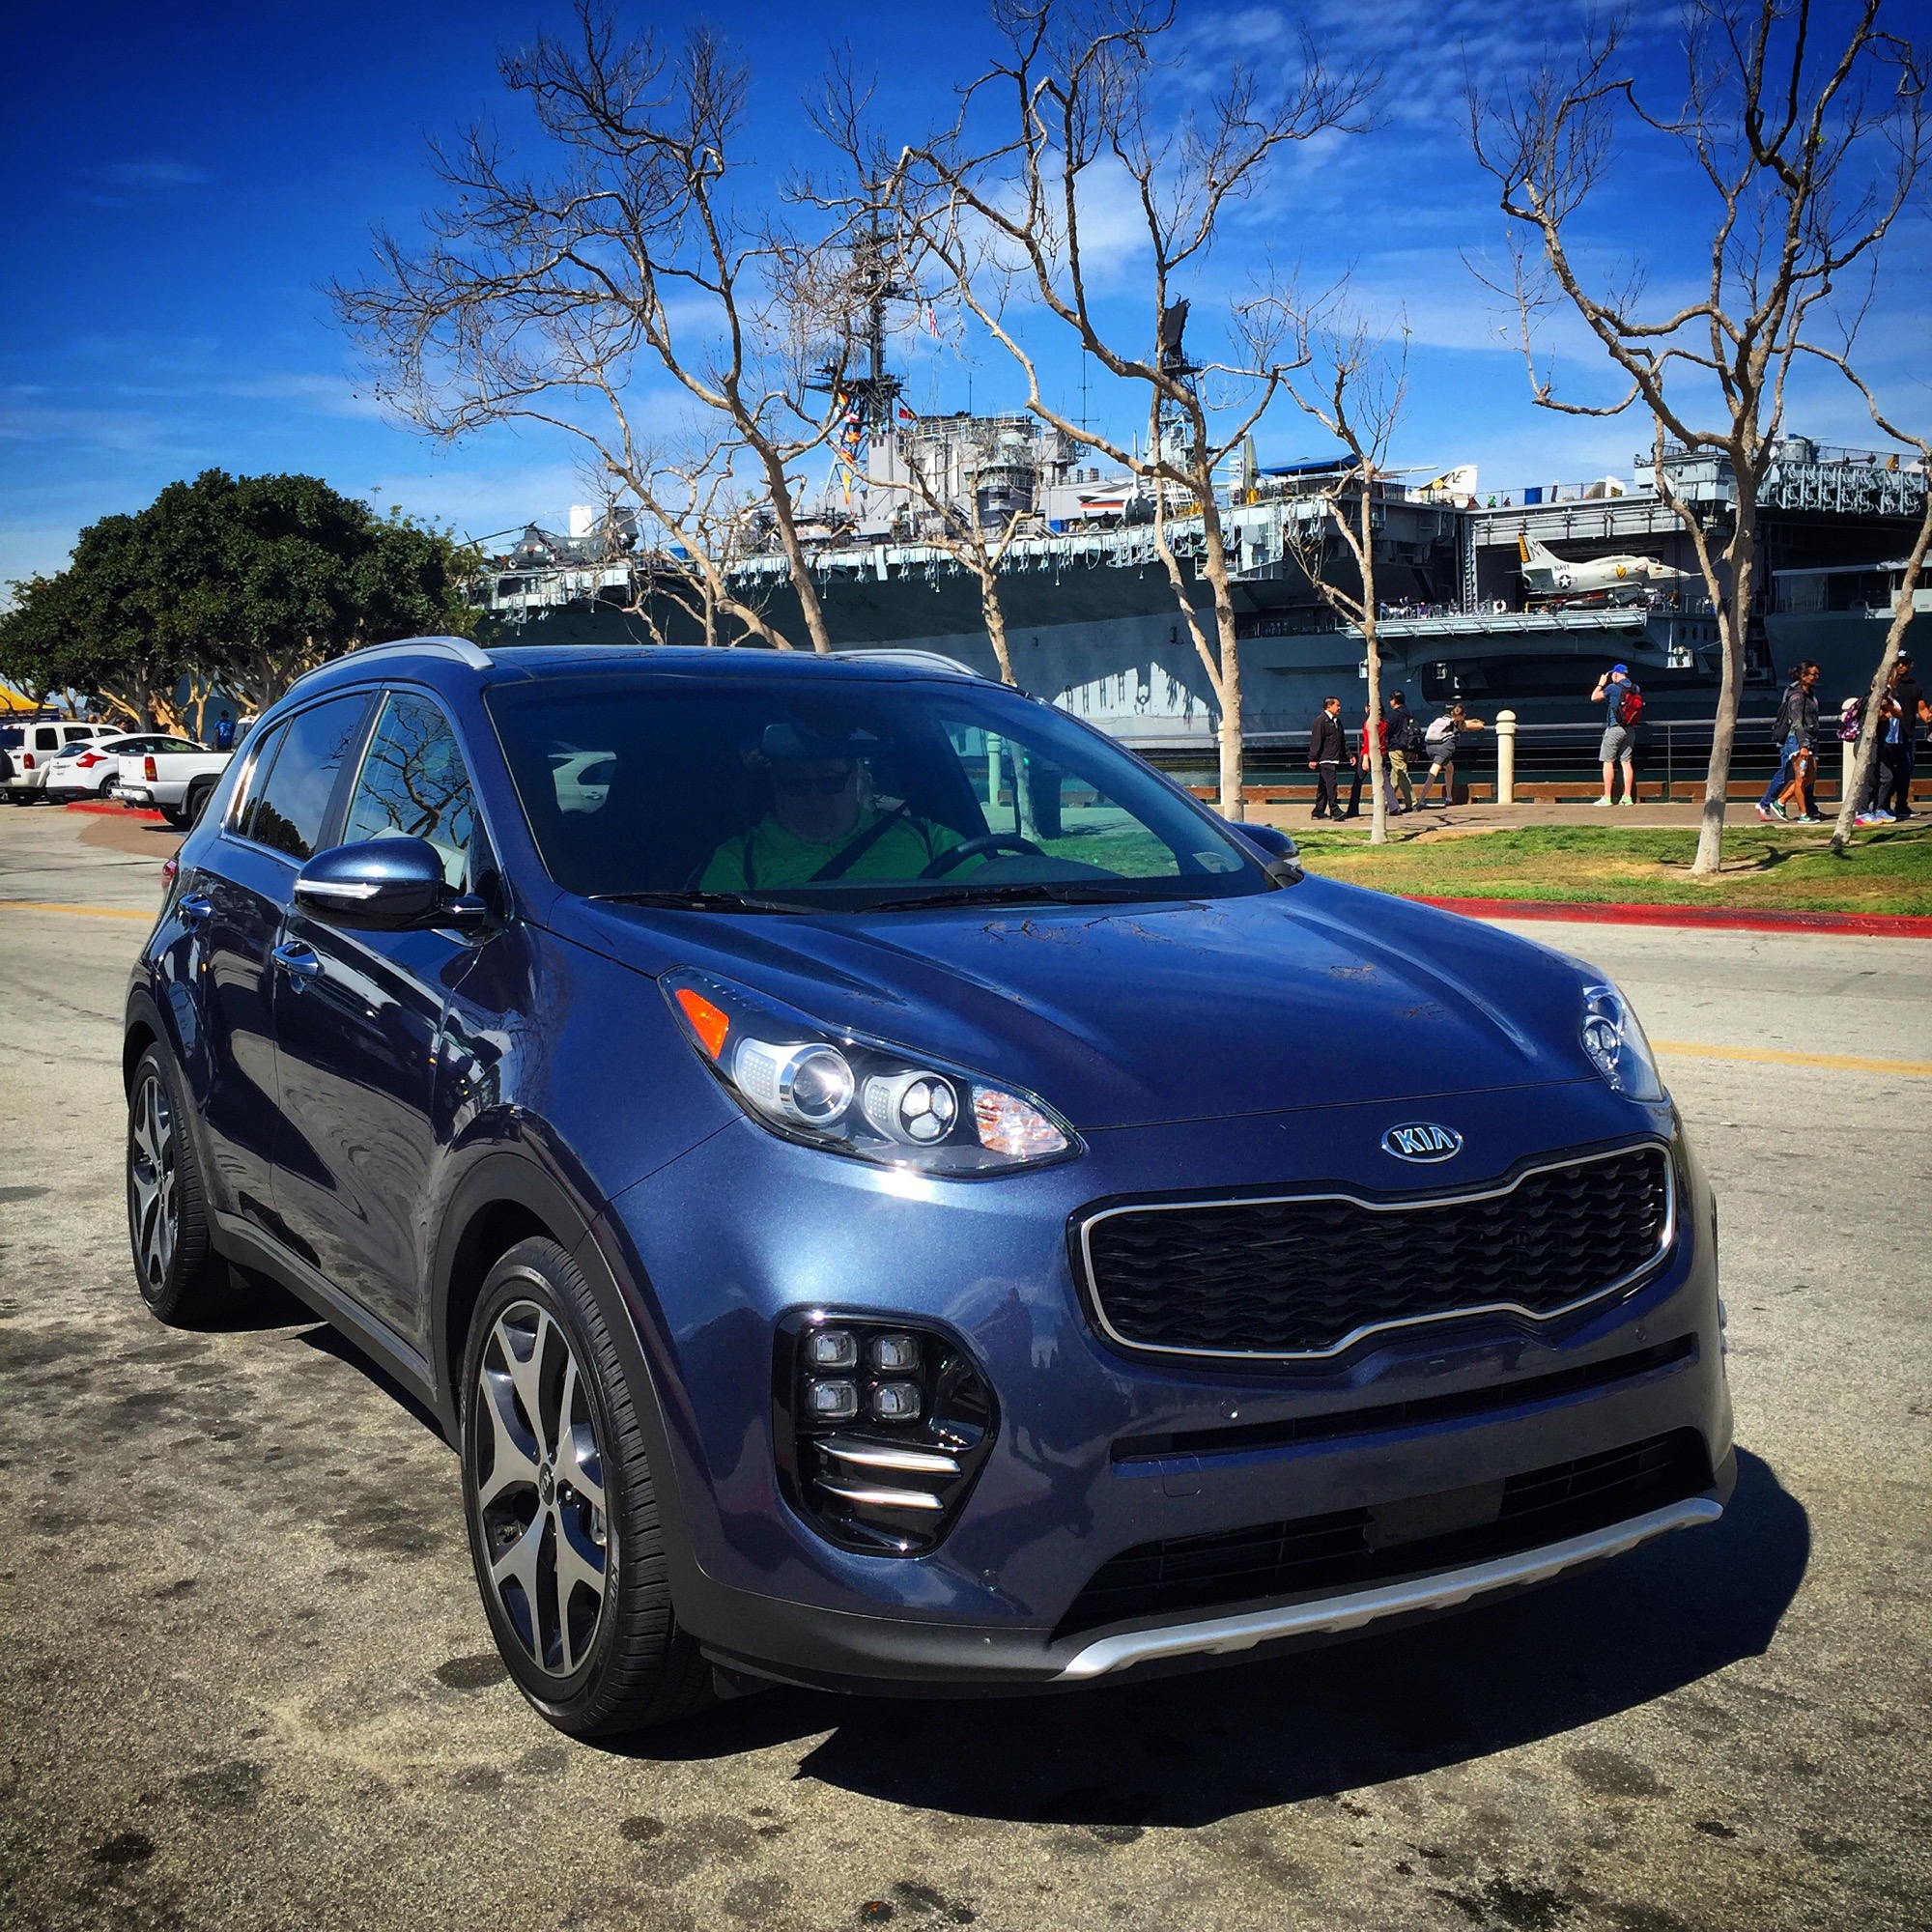 2018 Kia Sportage SX photo - 5